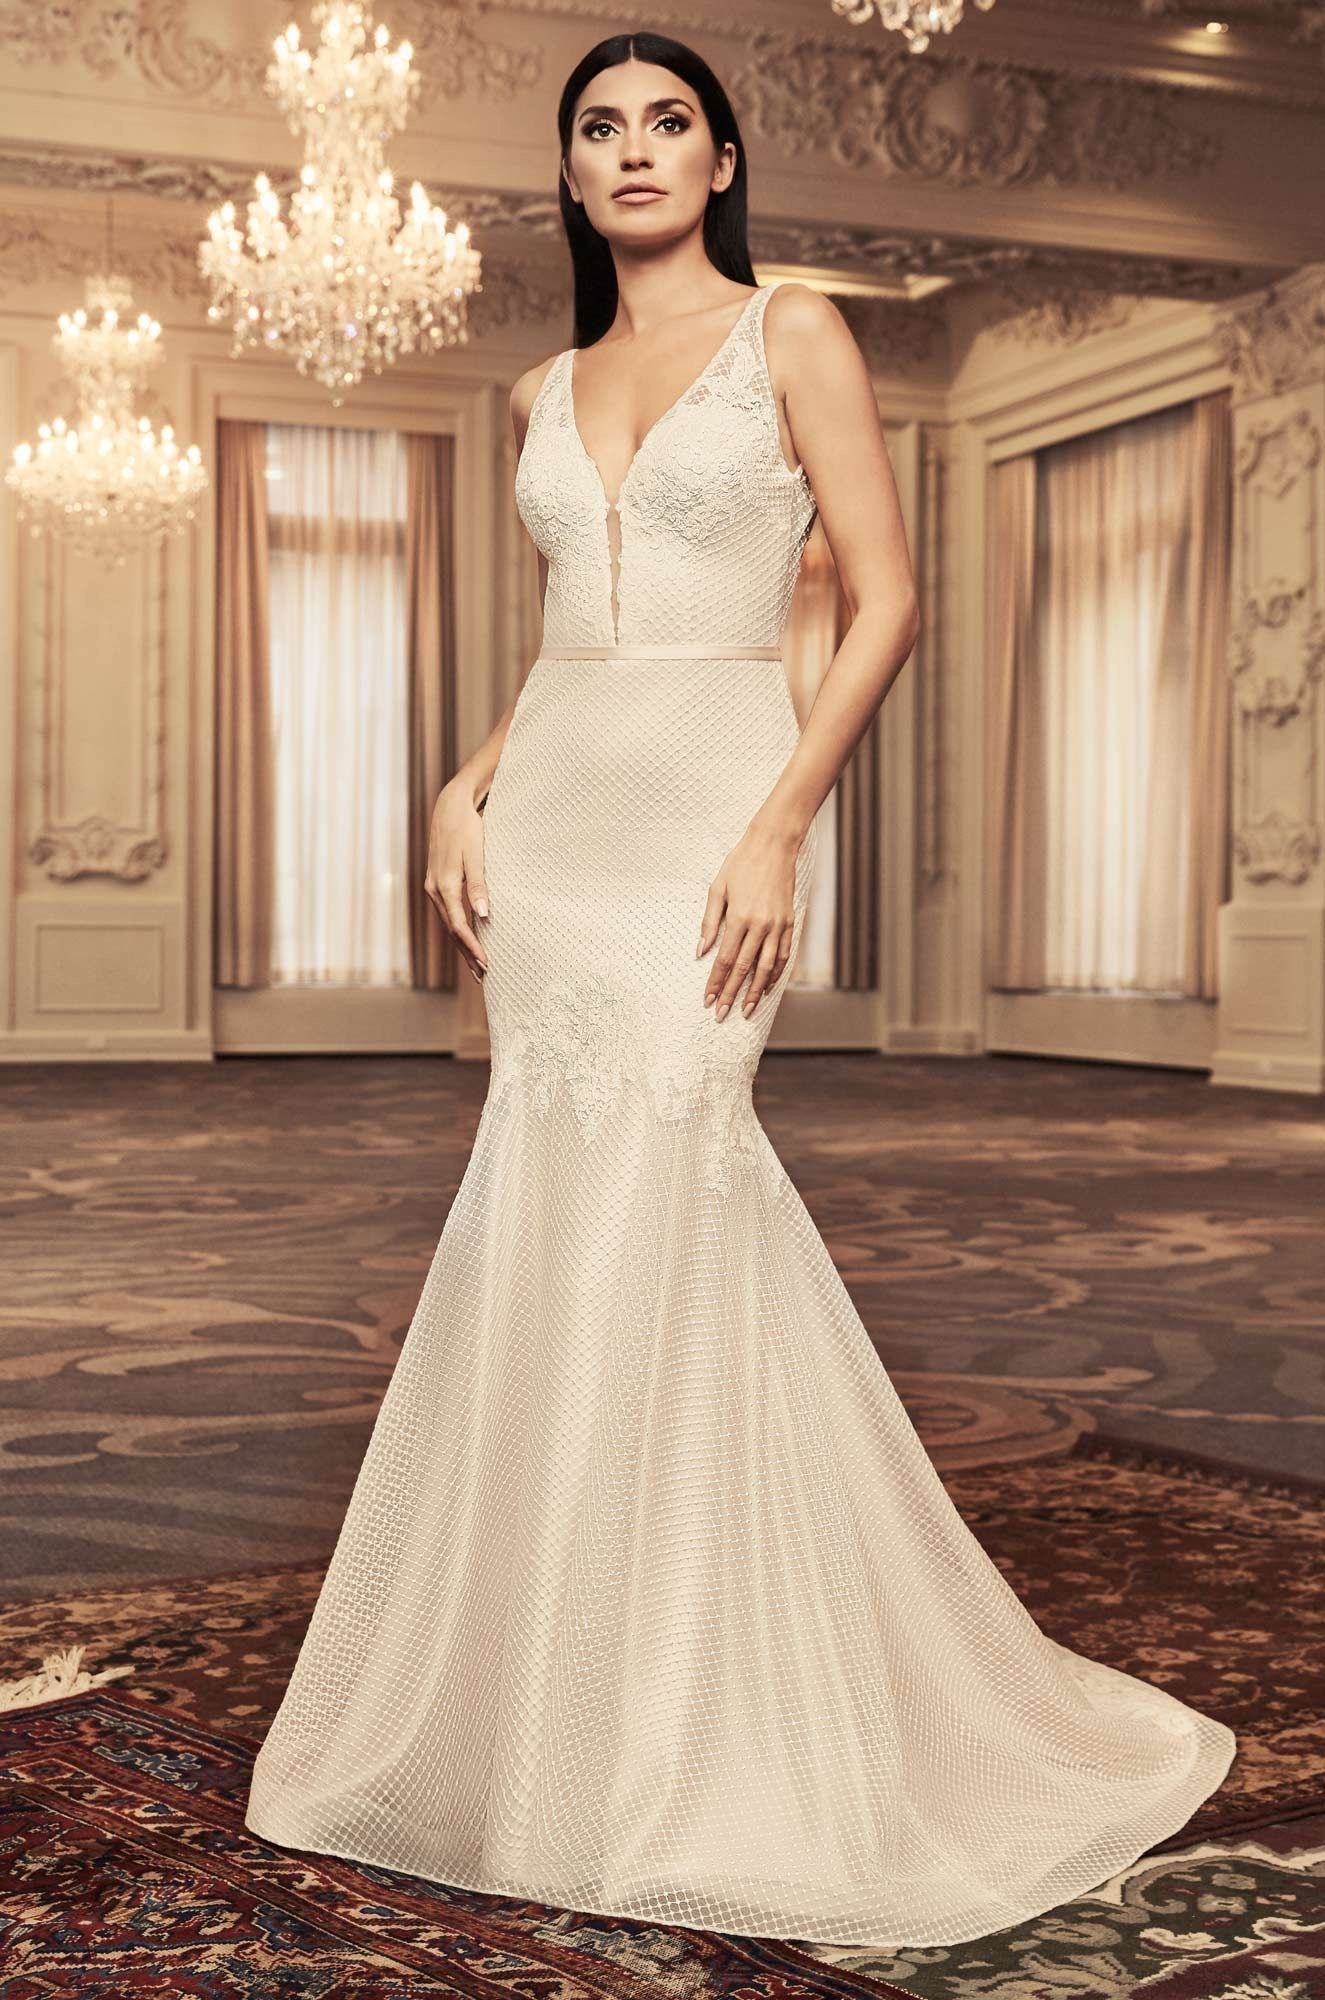 Pin by paloma barragan on wedding dresses pinterest wedding